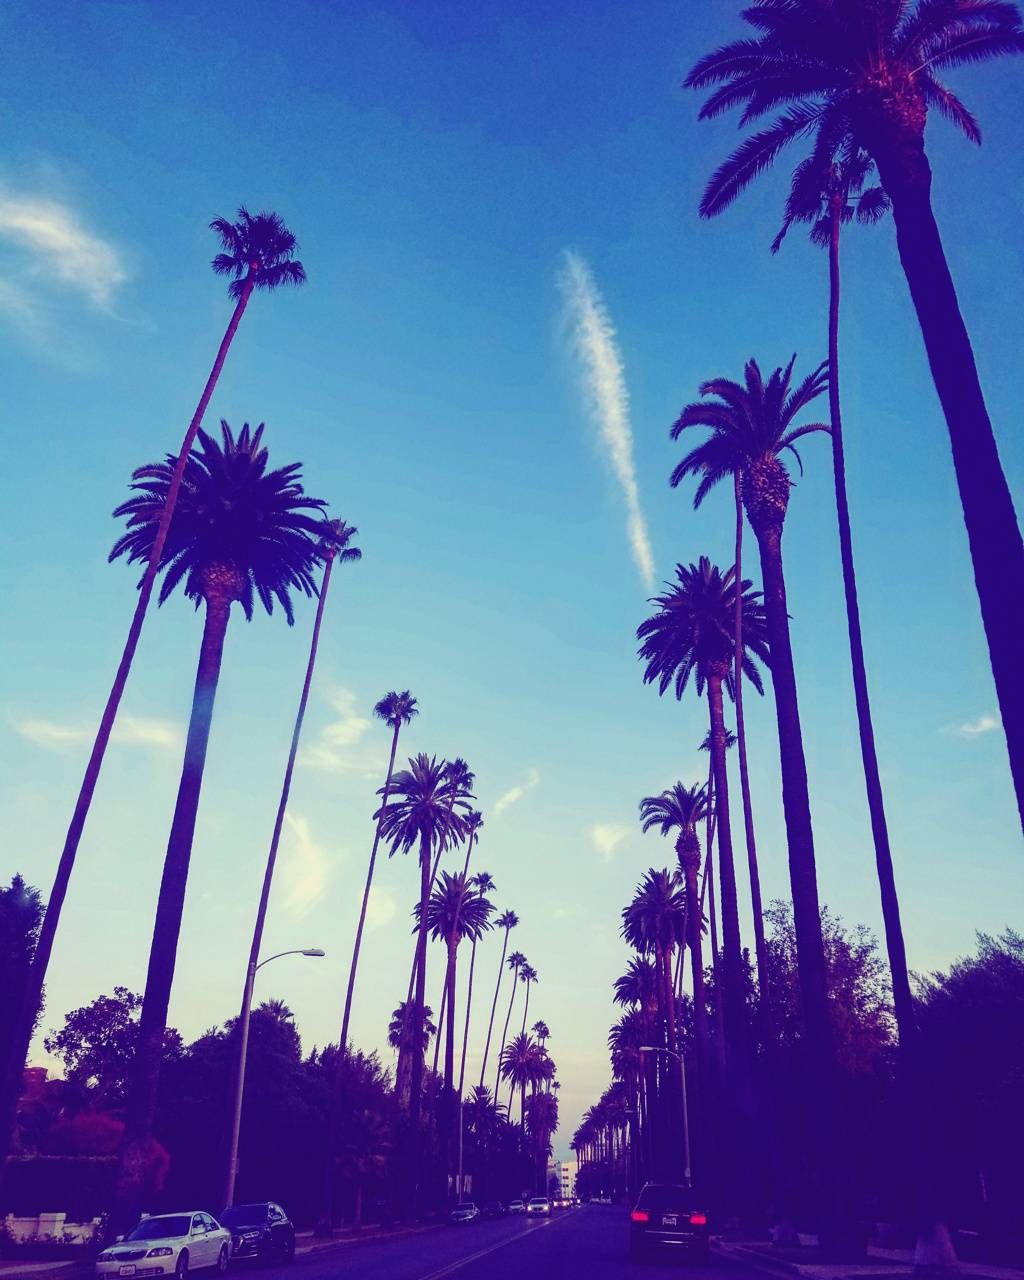 Los Angeles Wallpaper By Wolfieeee A6 Free On Zedge